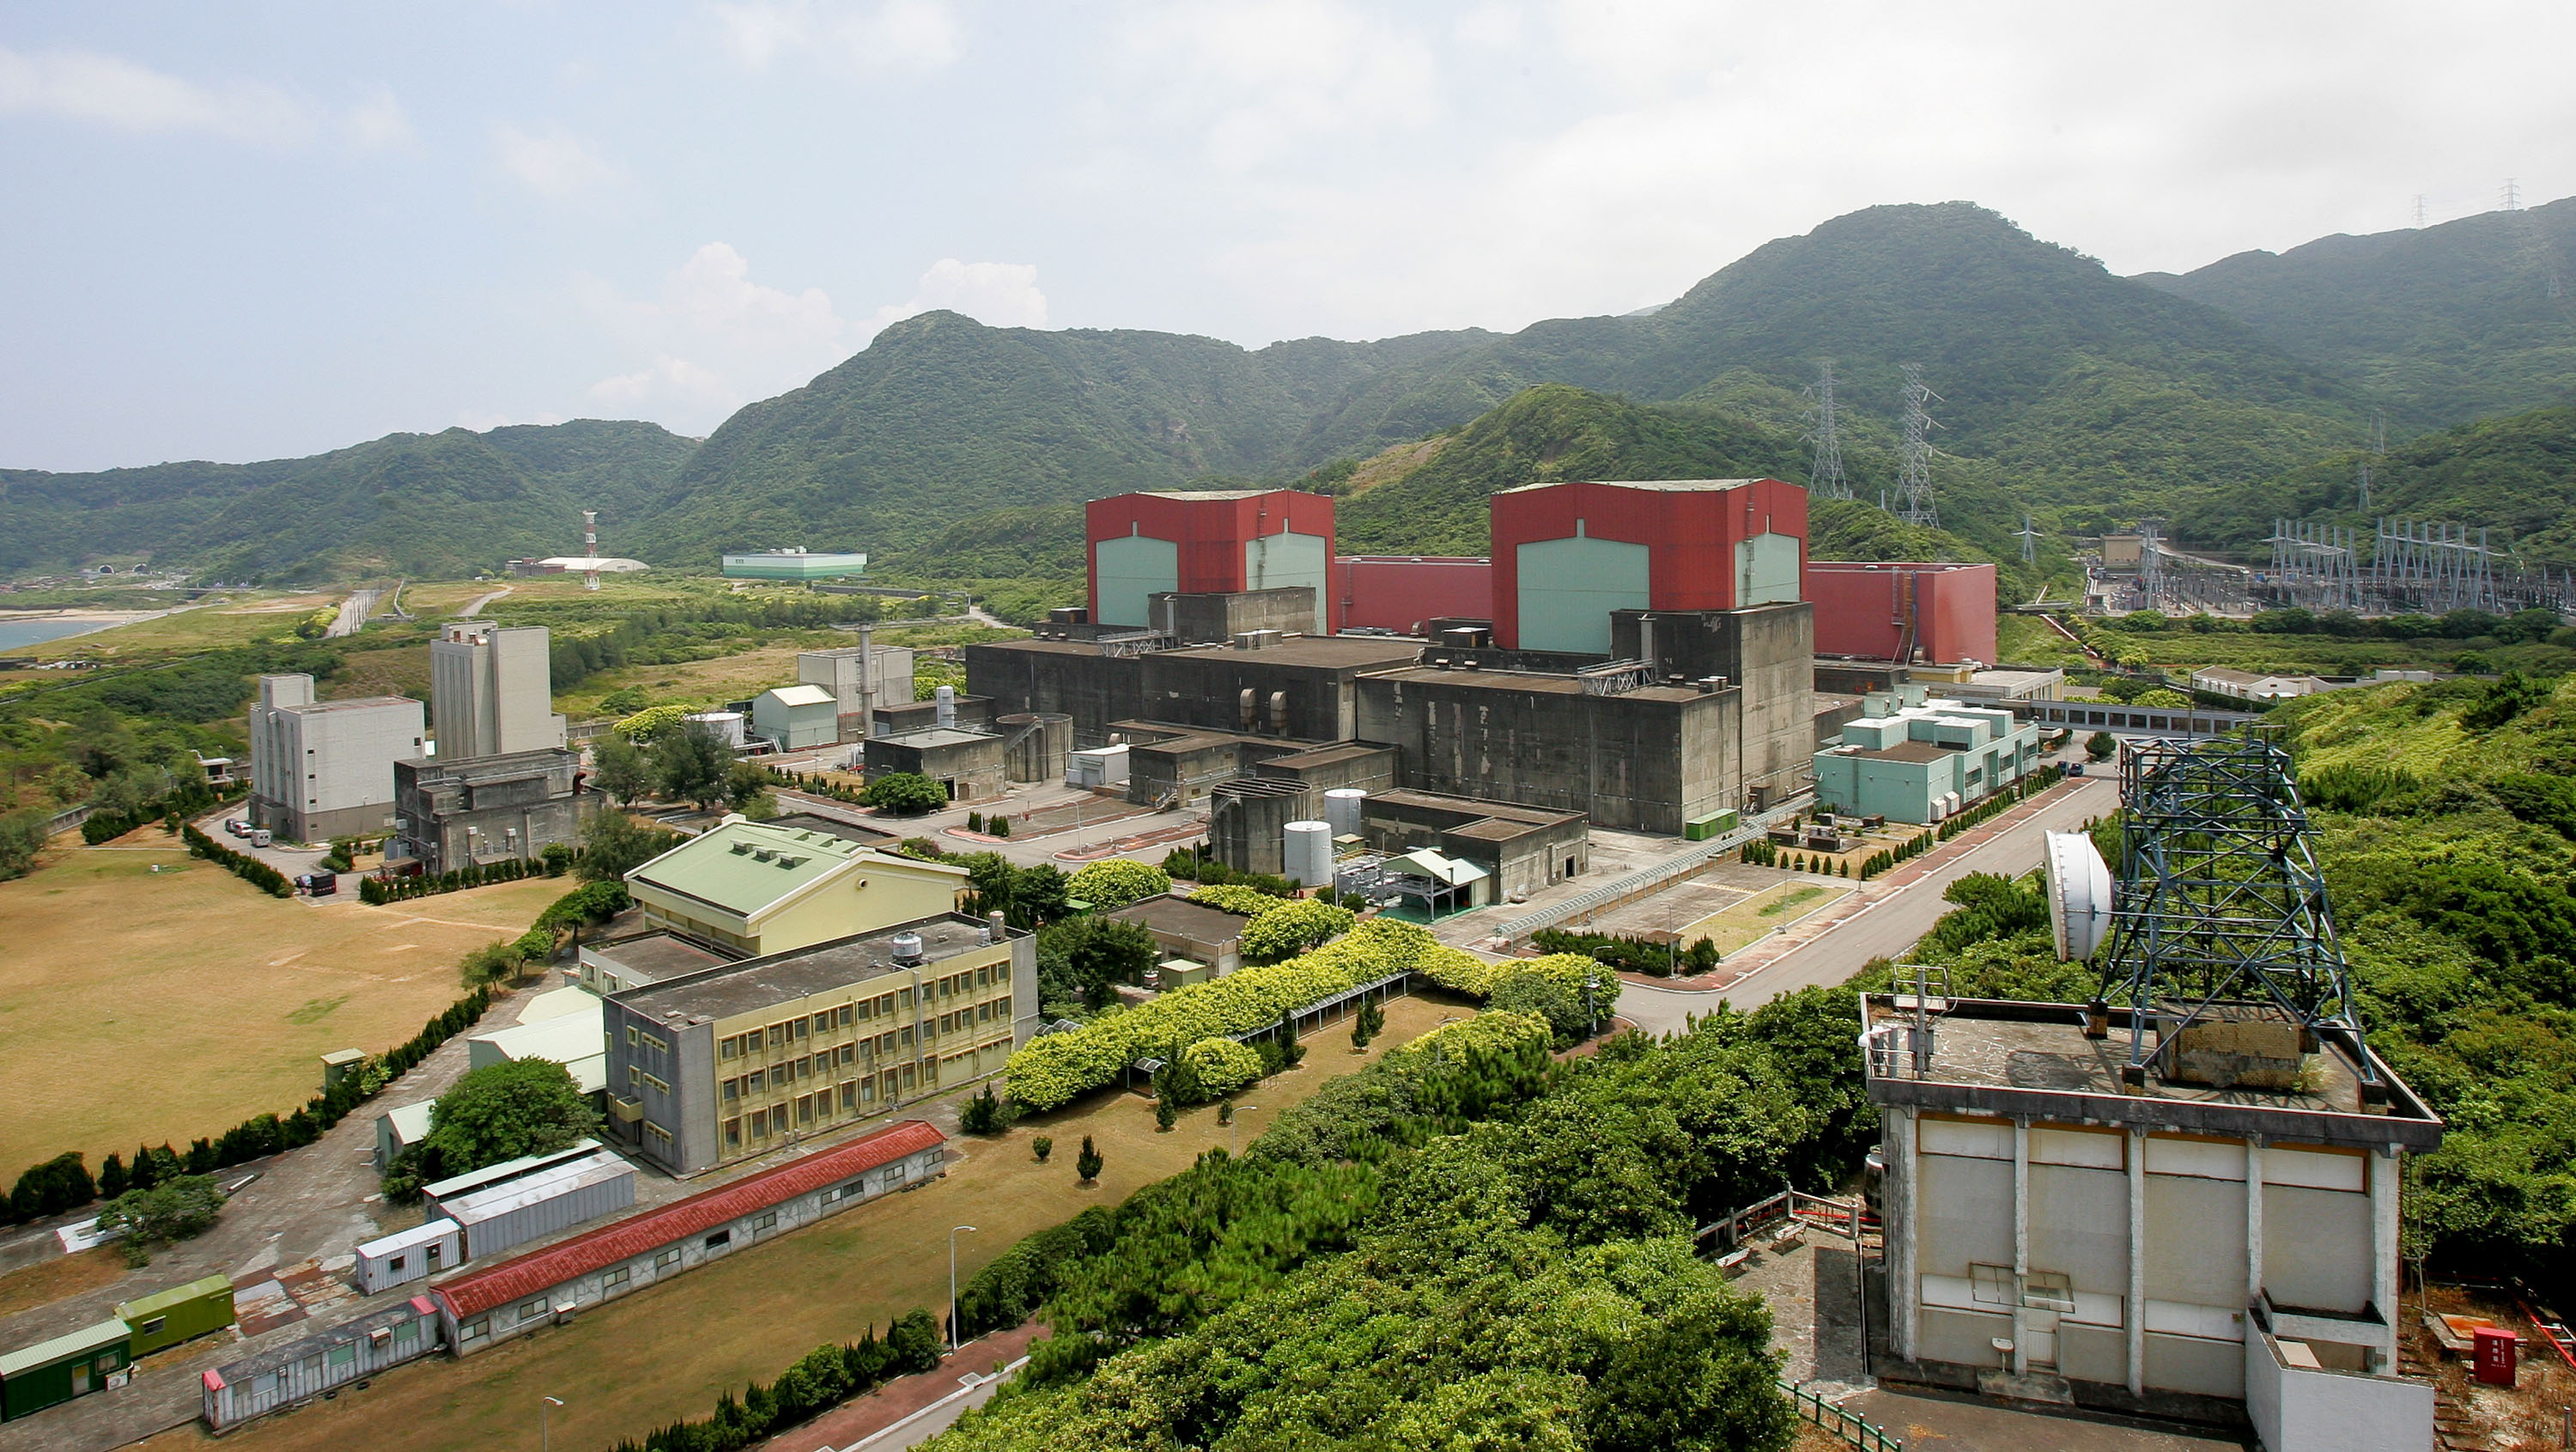 Taiwan Power Co.'s No. 2 nuclear power plant stands in Wanli, Taipei county, Taiwan yesterday. Taiwan Power Co. is considering adding as many as 10 re...